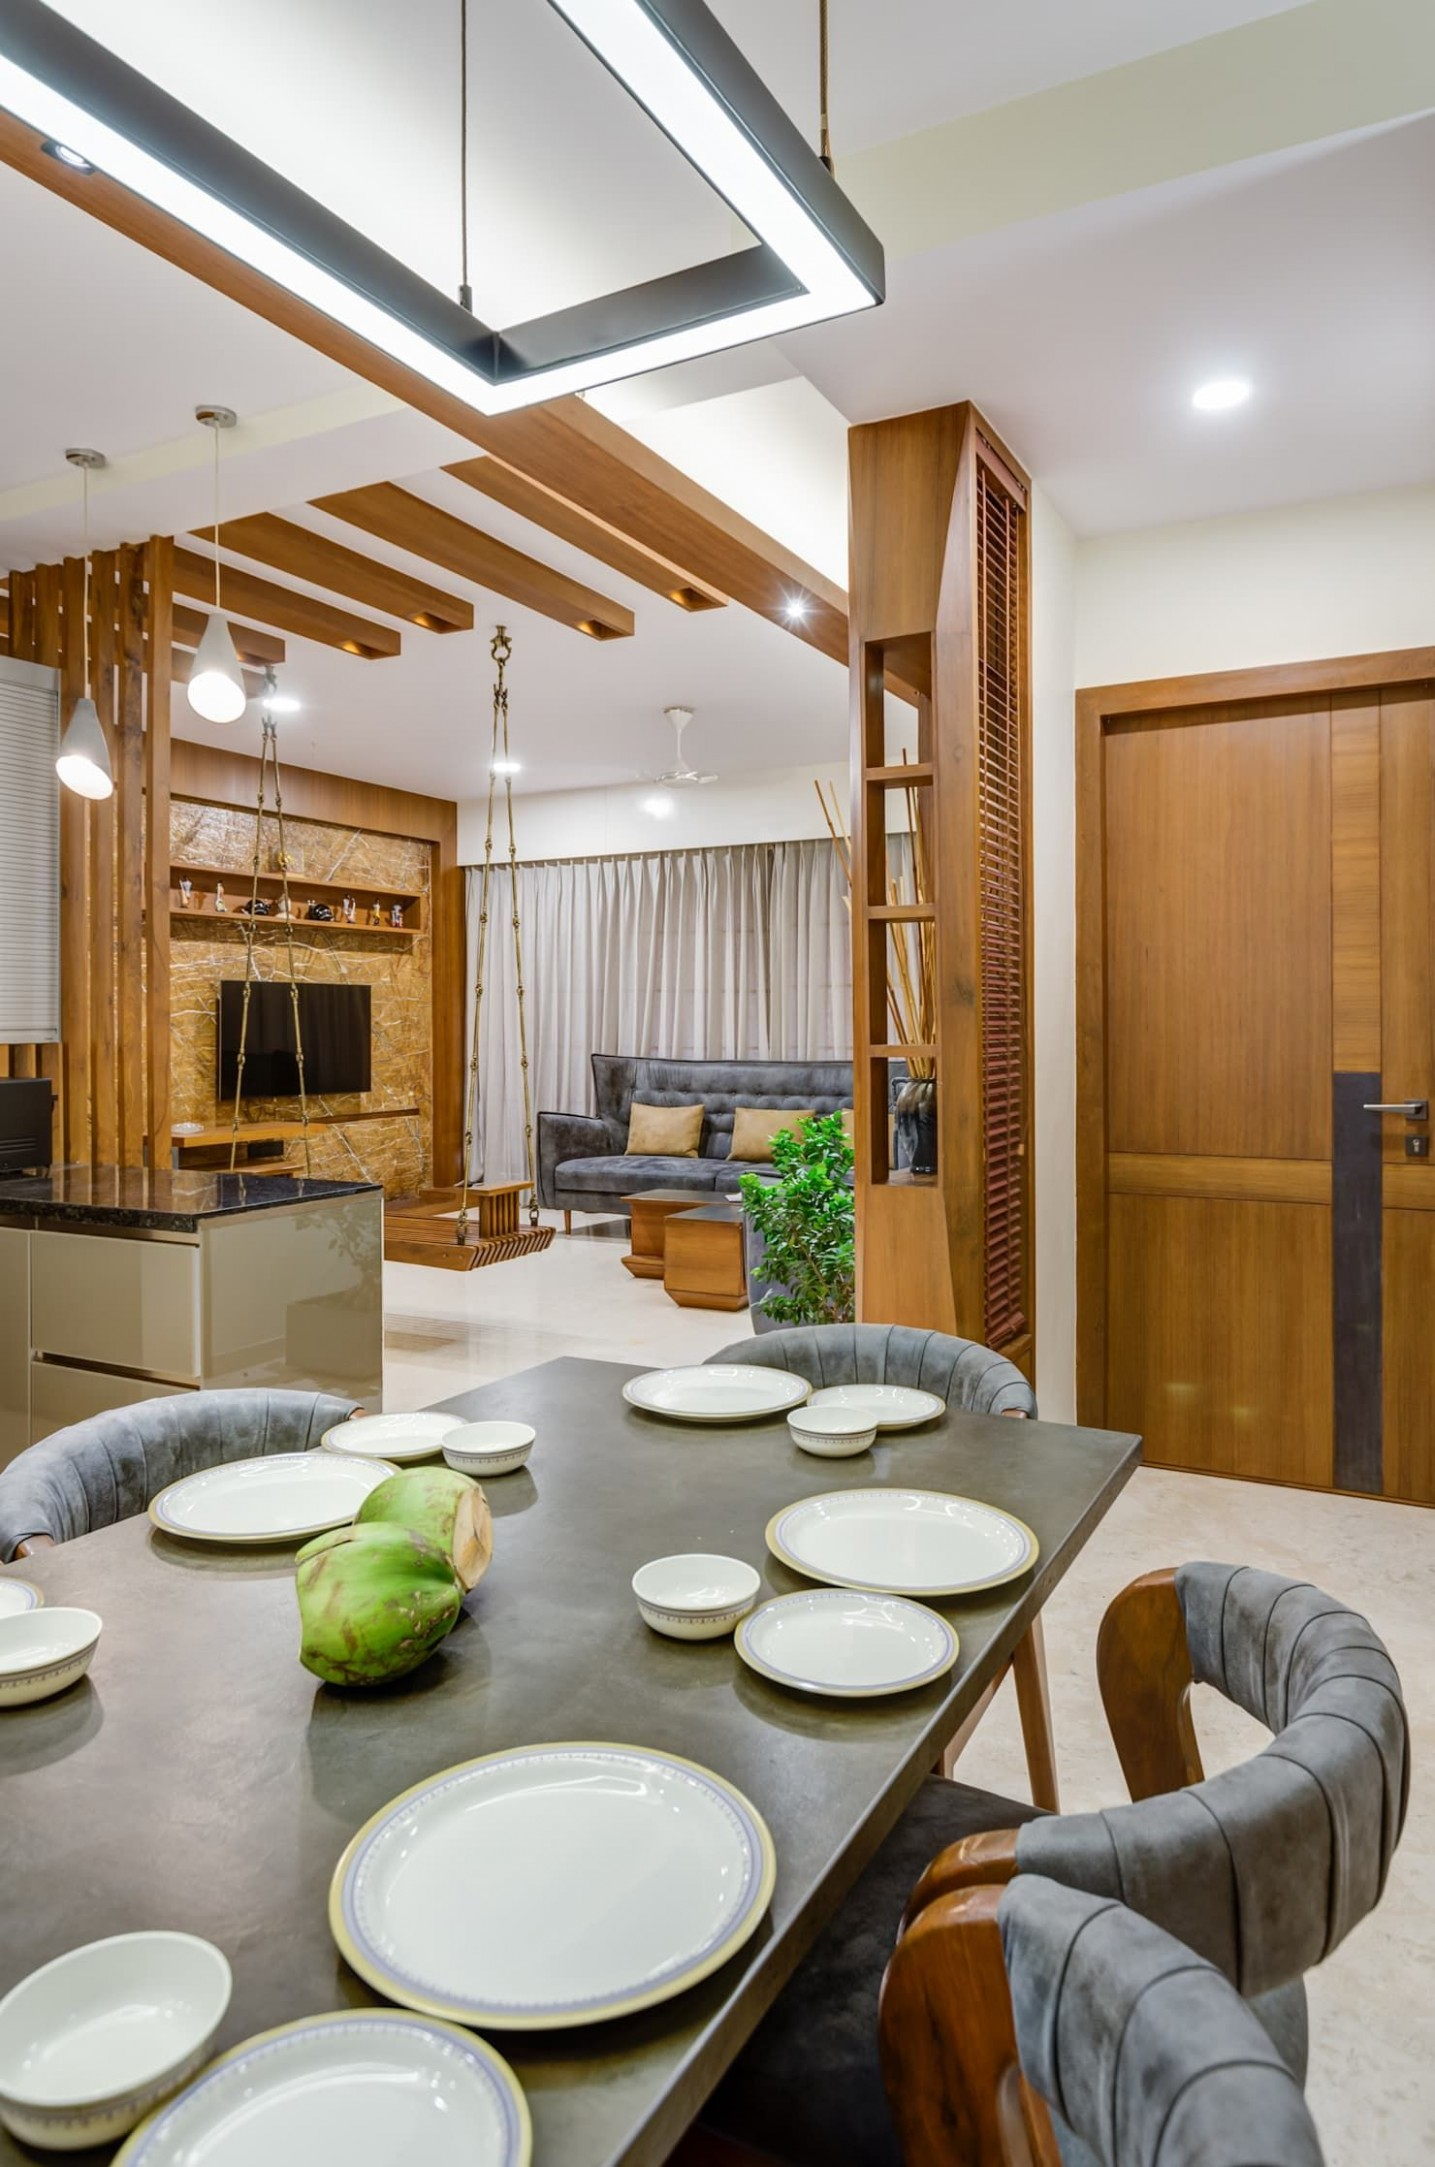 Interior 12 modern dining room by studio living stone modern  - Dining Room Ideas Homify